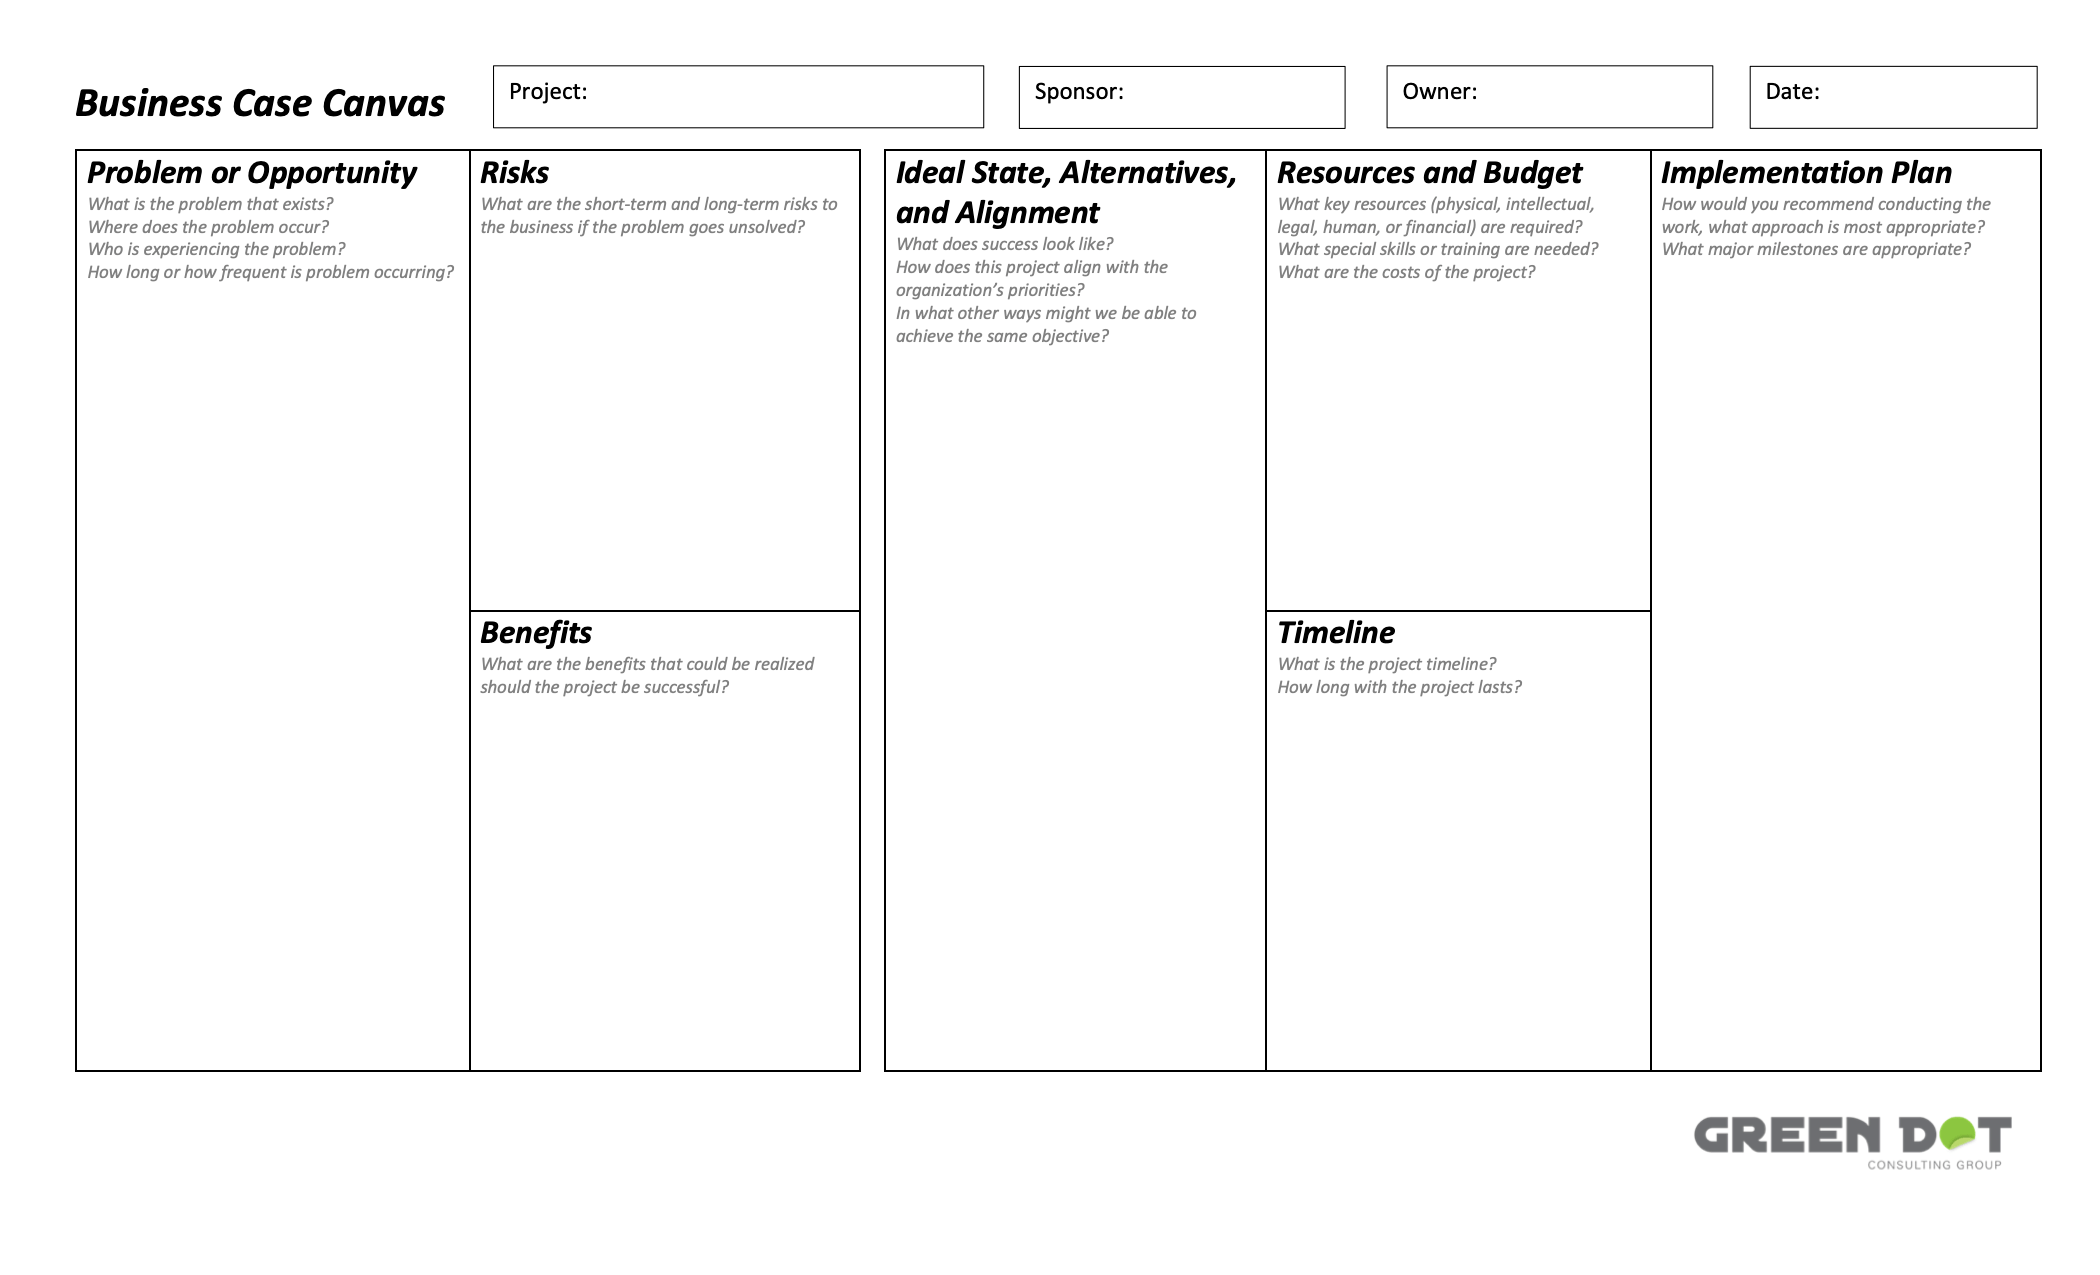 Project Business Case Canvas template